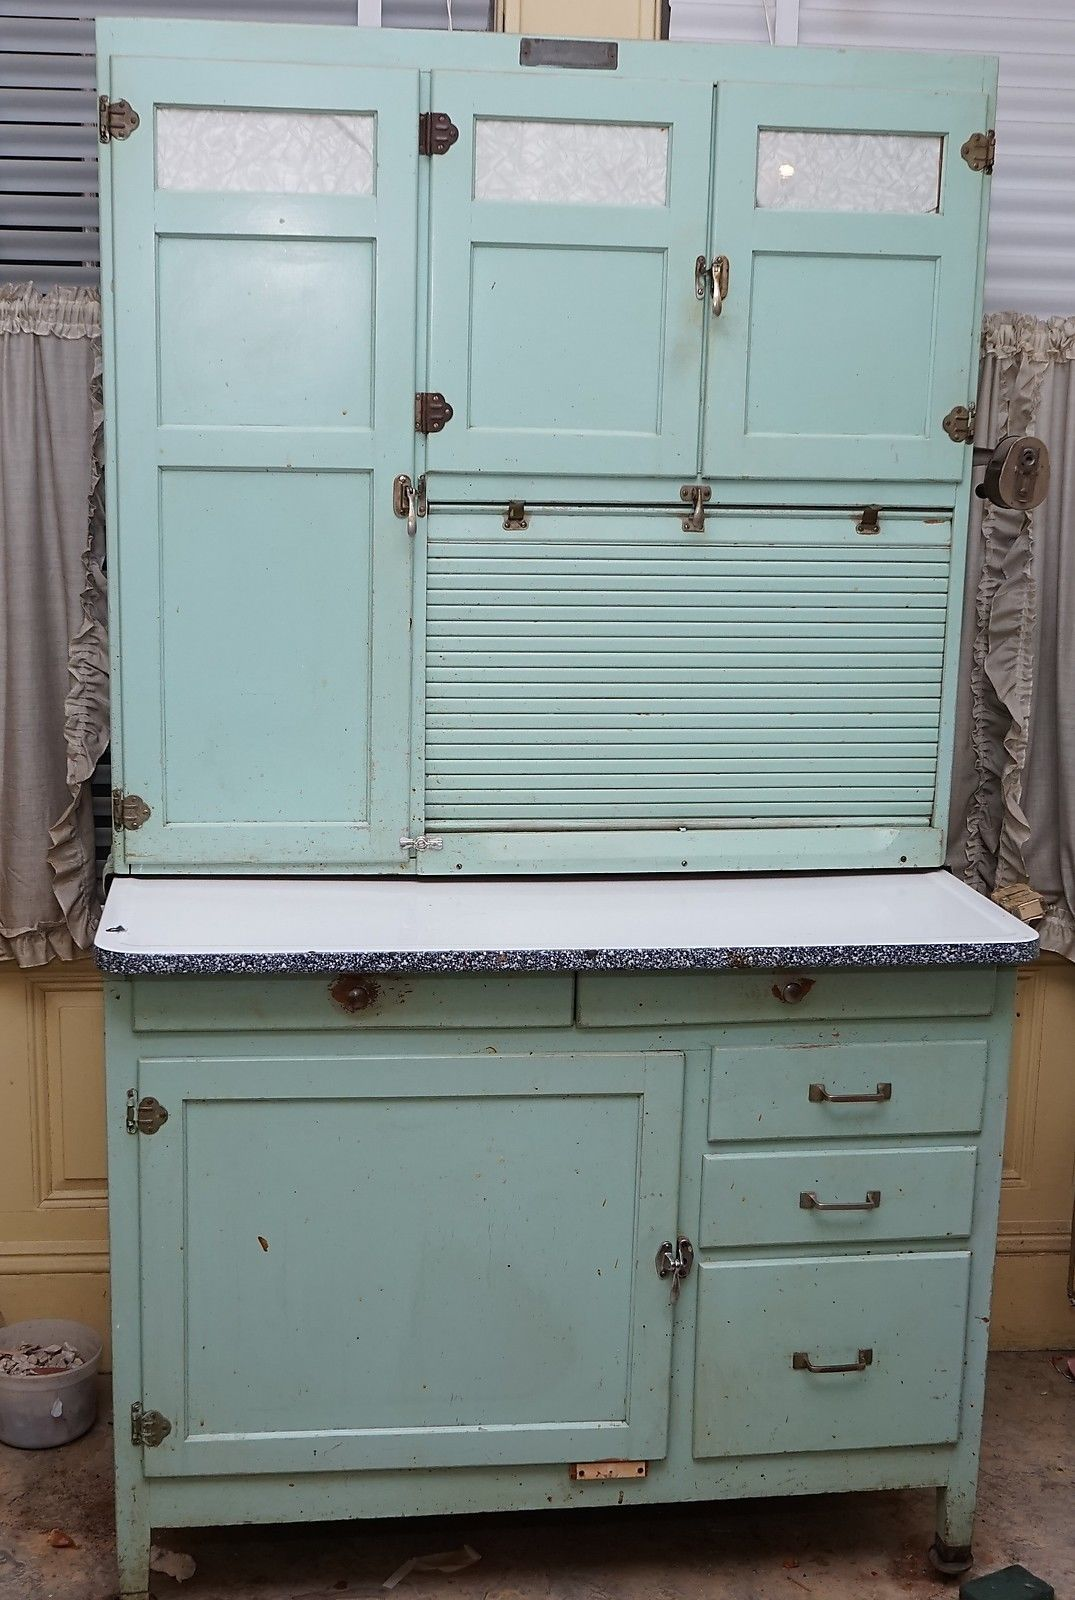 Vintage hoosier kitchen cabinet by mcdougall original paint blue ...